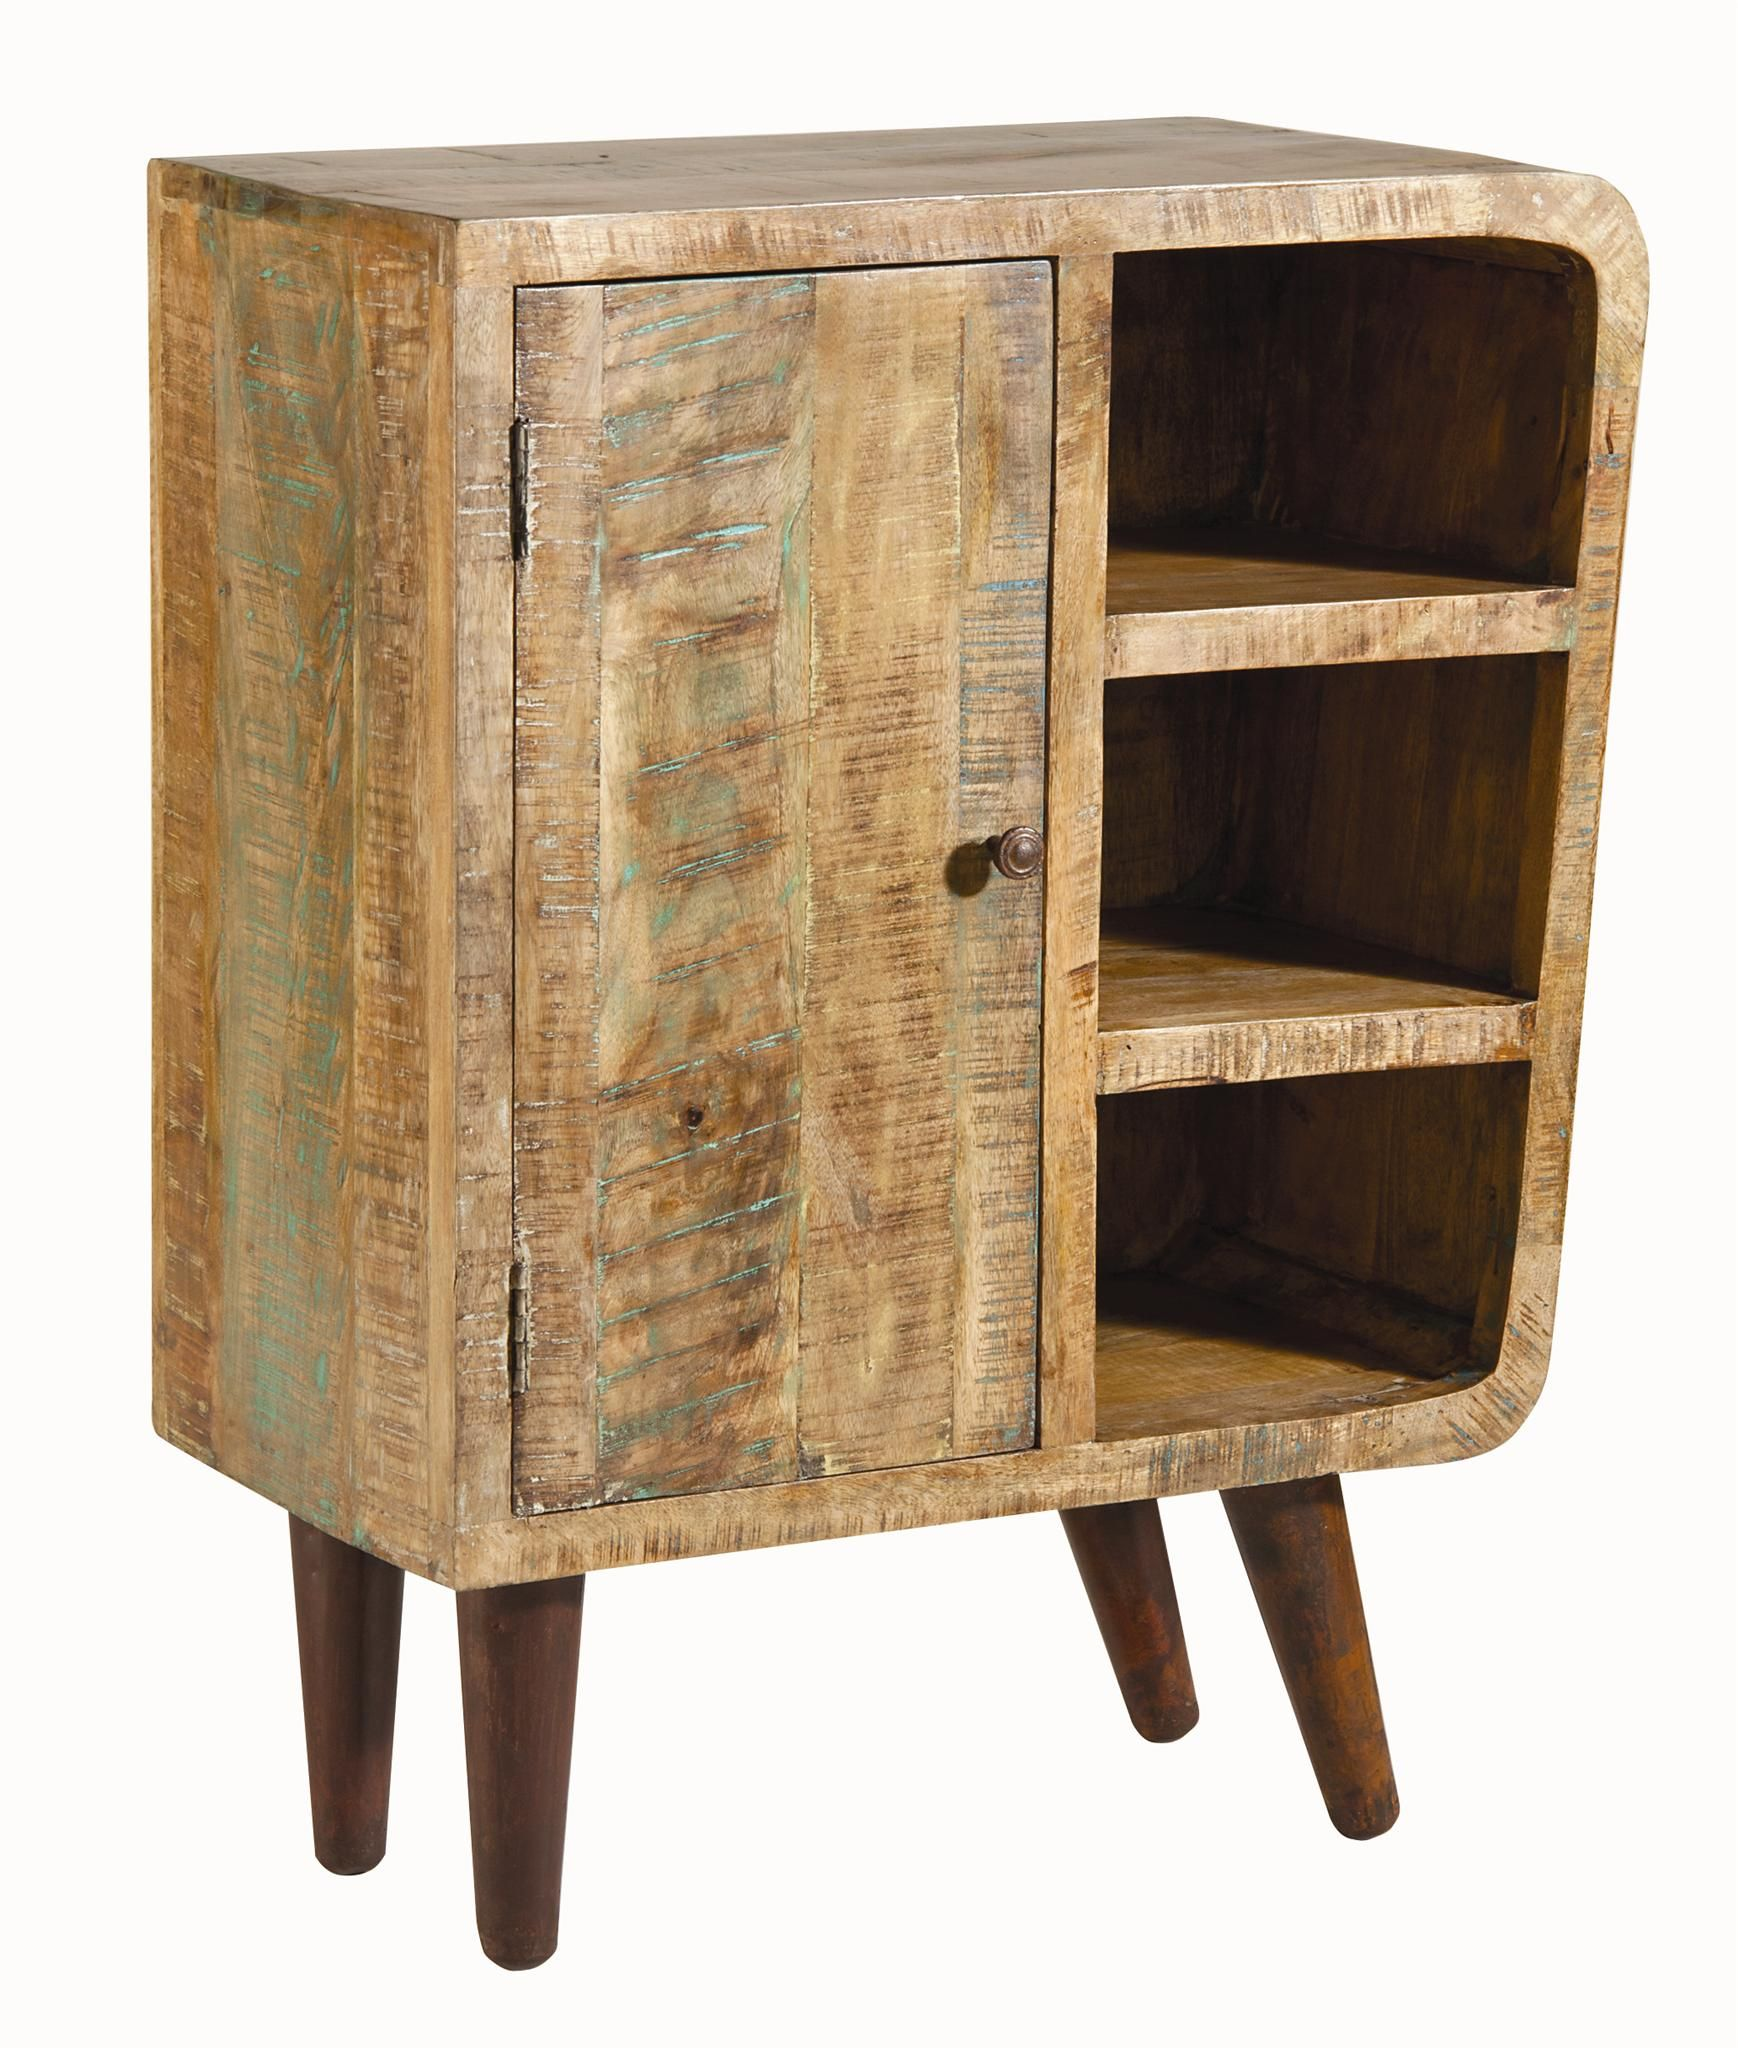 Pin By Diana Rollins On Master Bedroom Ideas Retro Cabinet Furniture Wood Cabinets